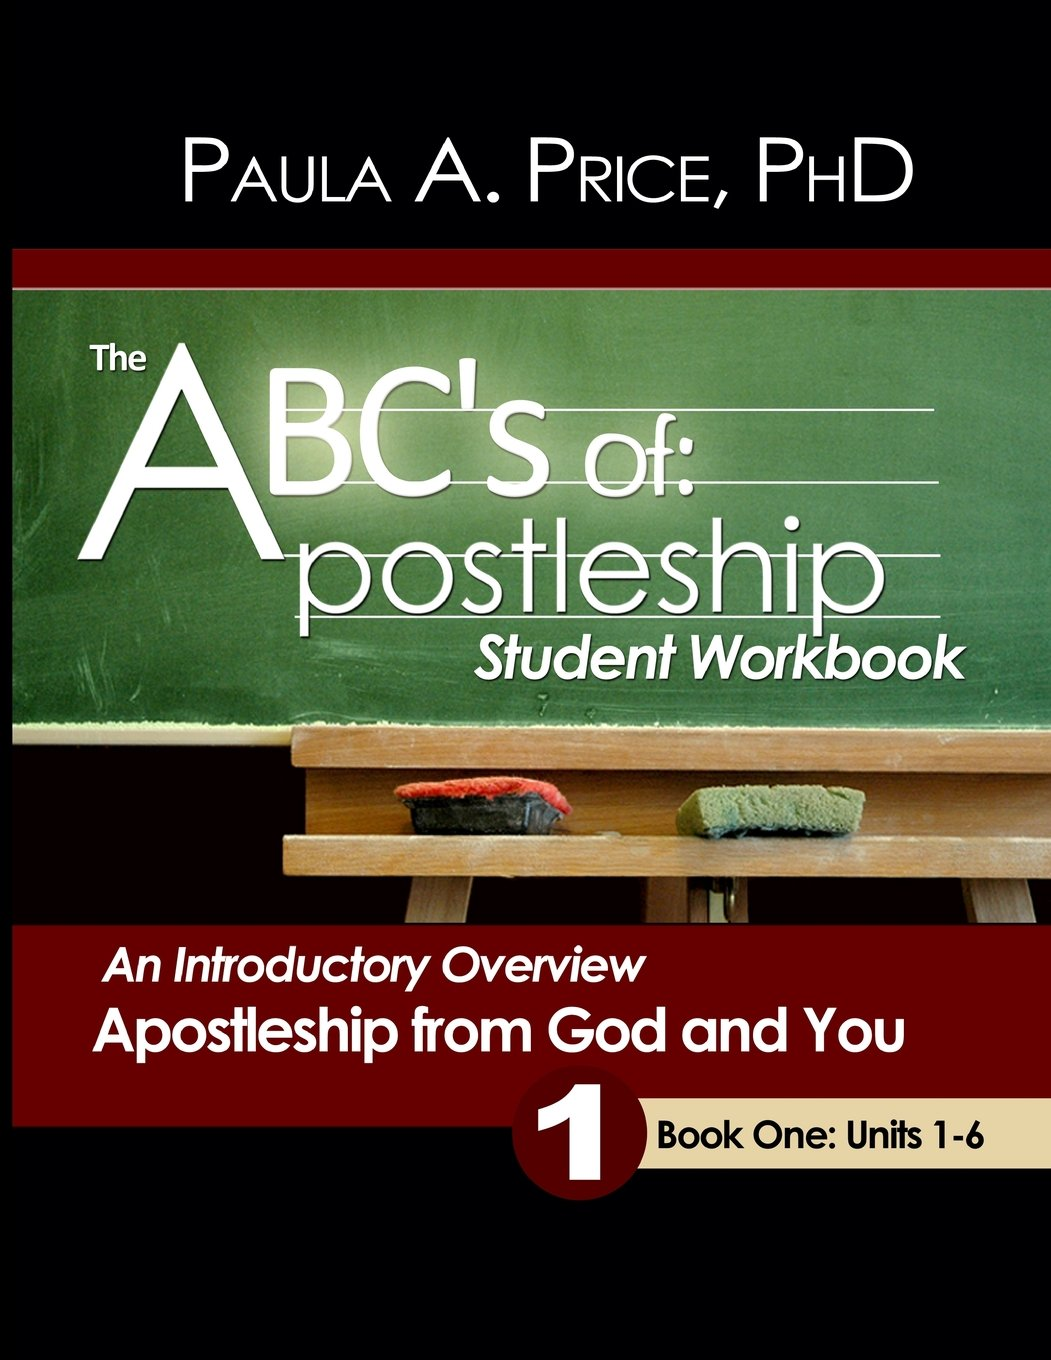 Workbooks god and family student workbook pdf : The ABCs of Apostleship: Student Workbook, Book One: Paula A ...